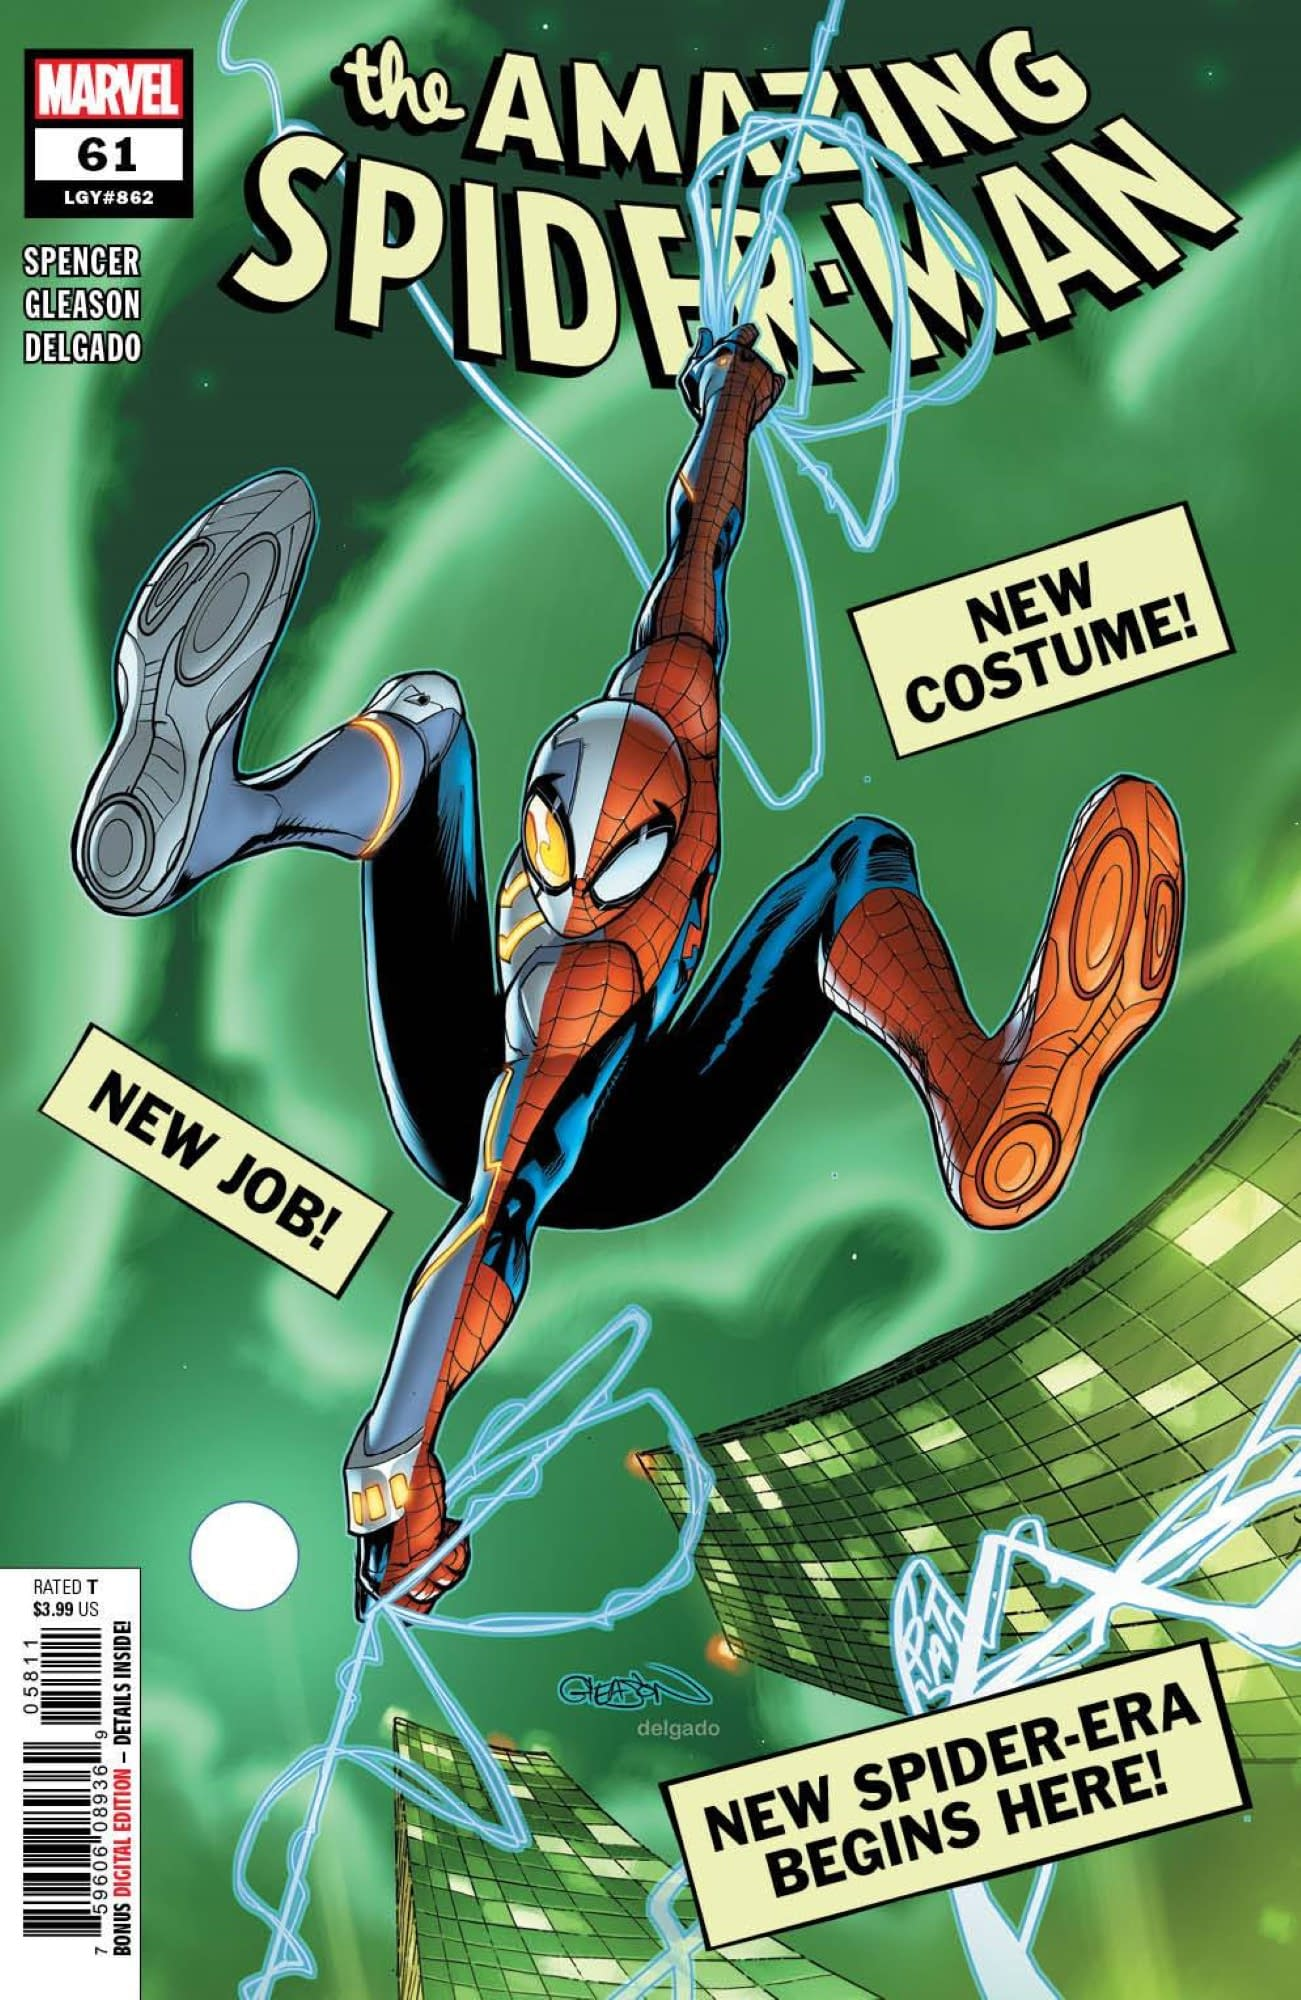 Tomorrow's Amazing Spider-Man #60 Revisits One More Day